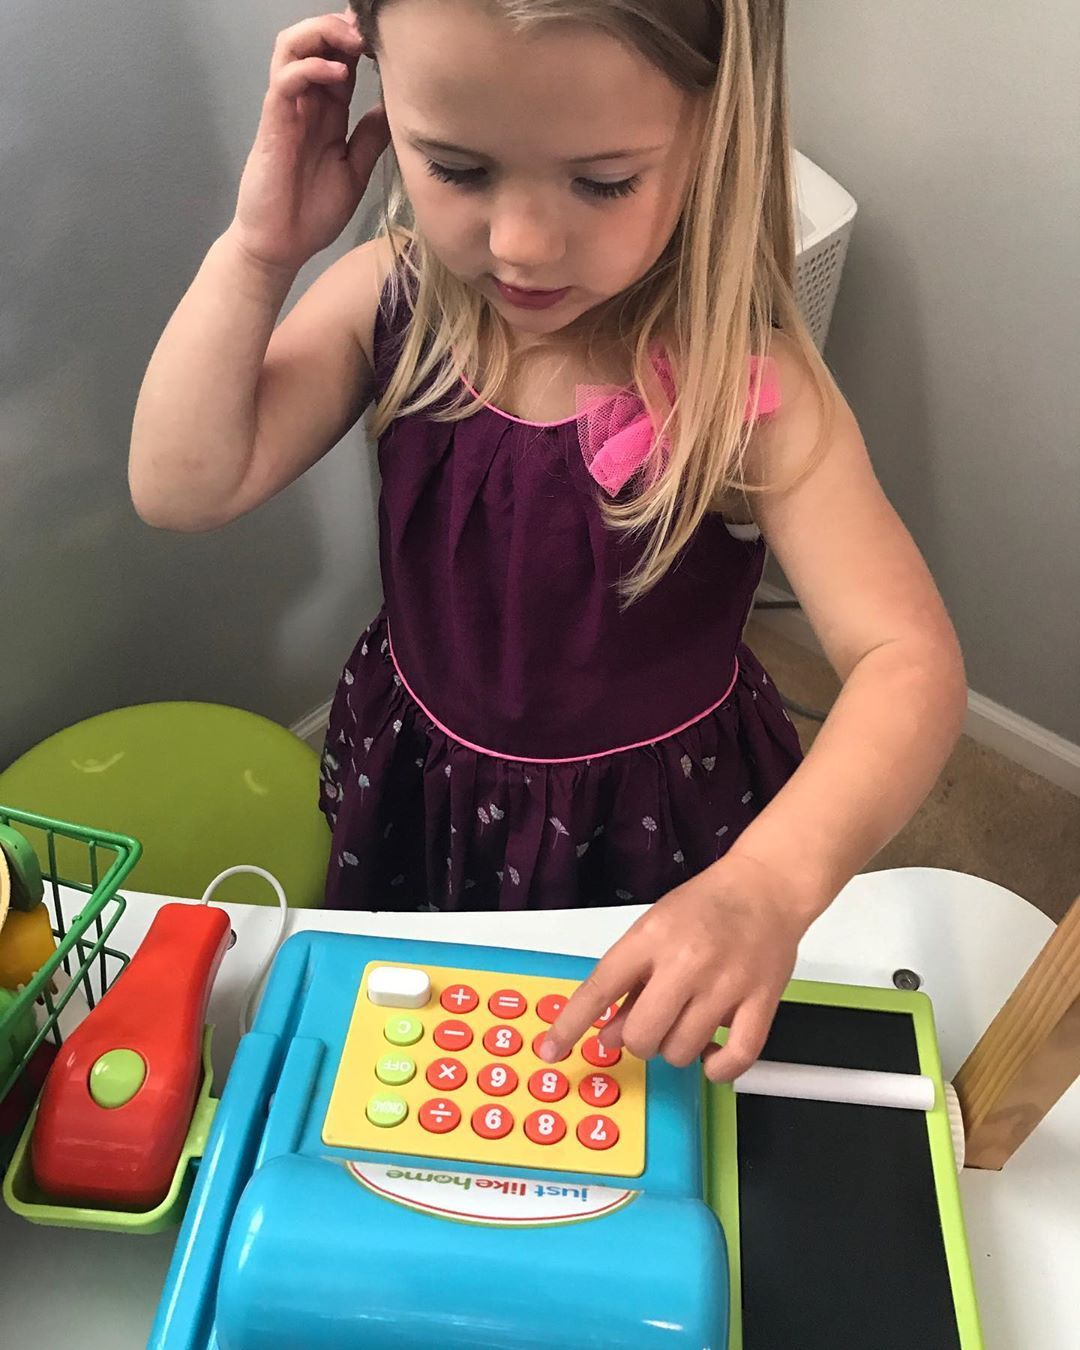 Use a cash register or old calculator to practice dialing